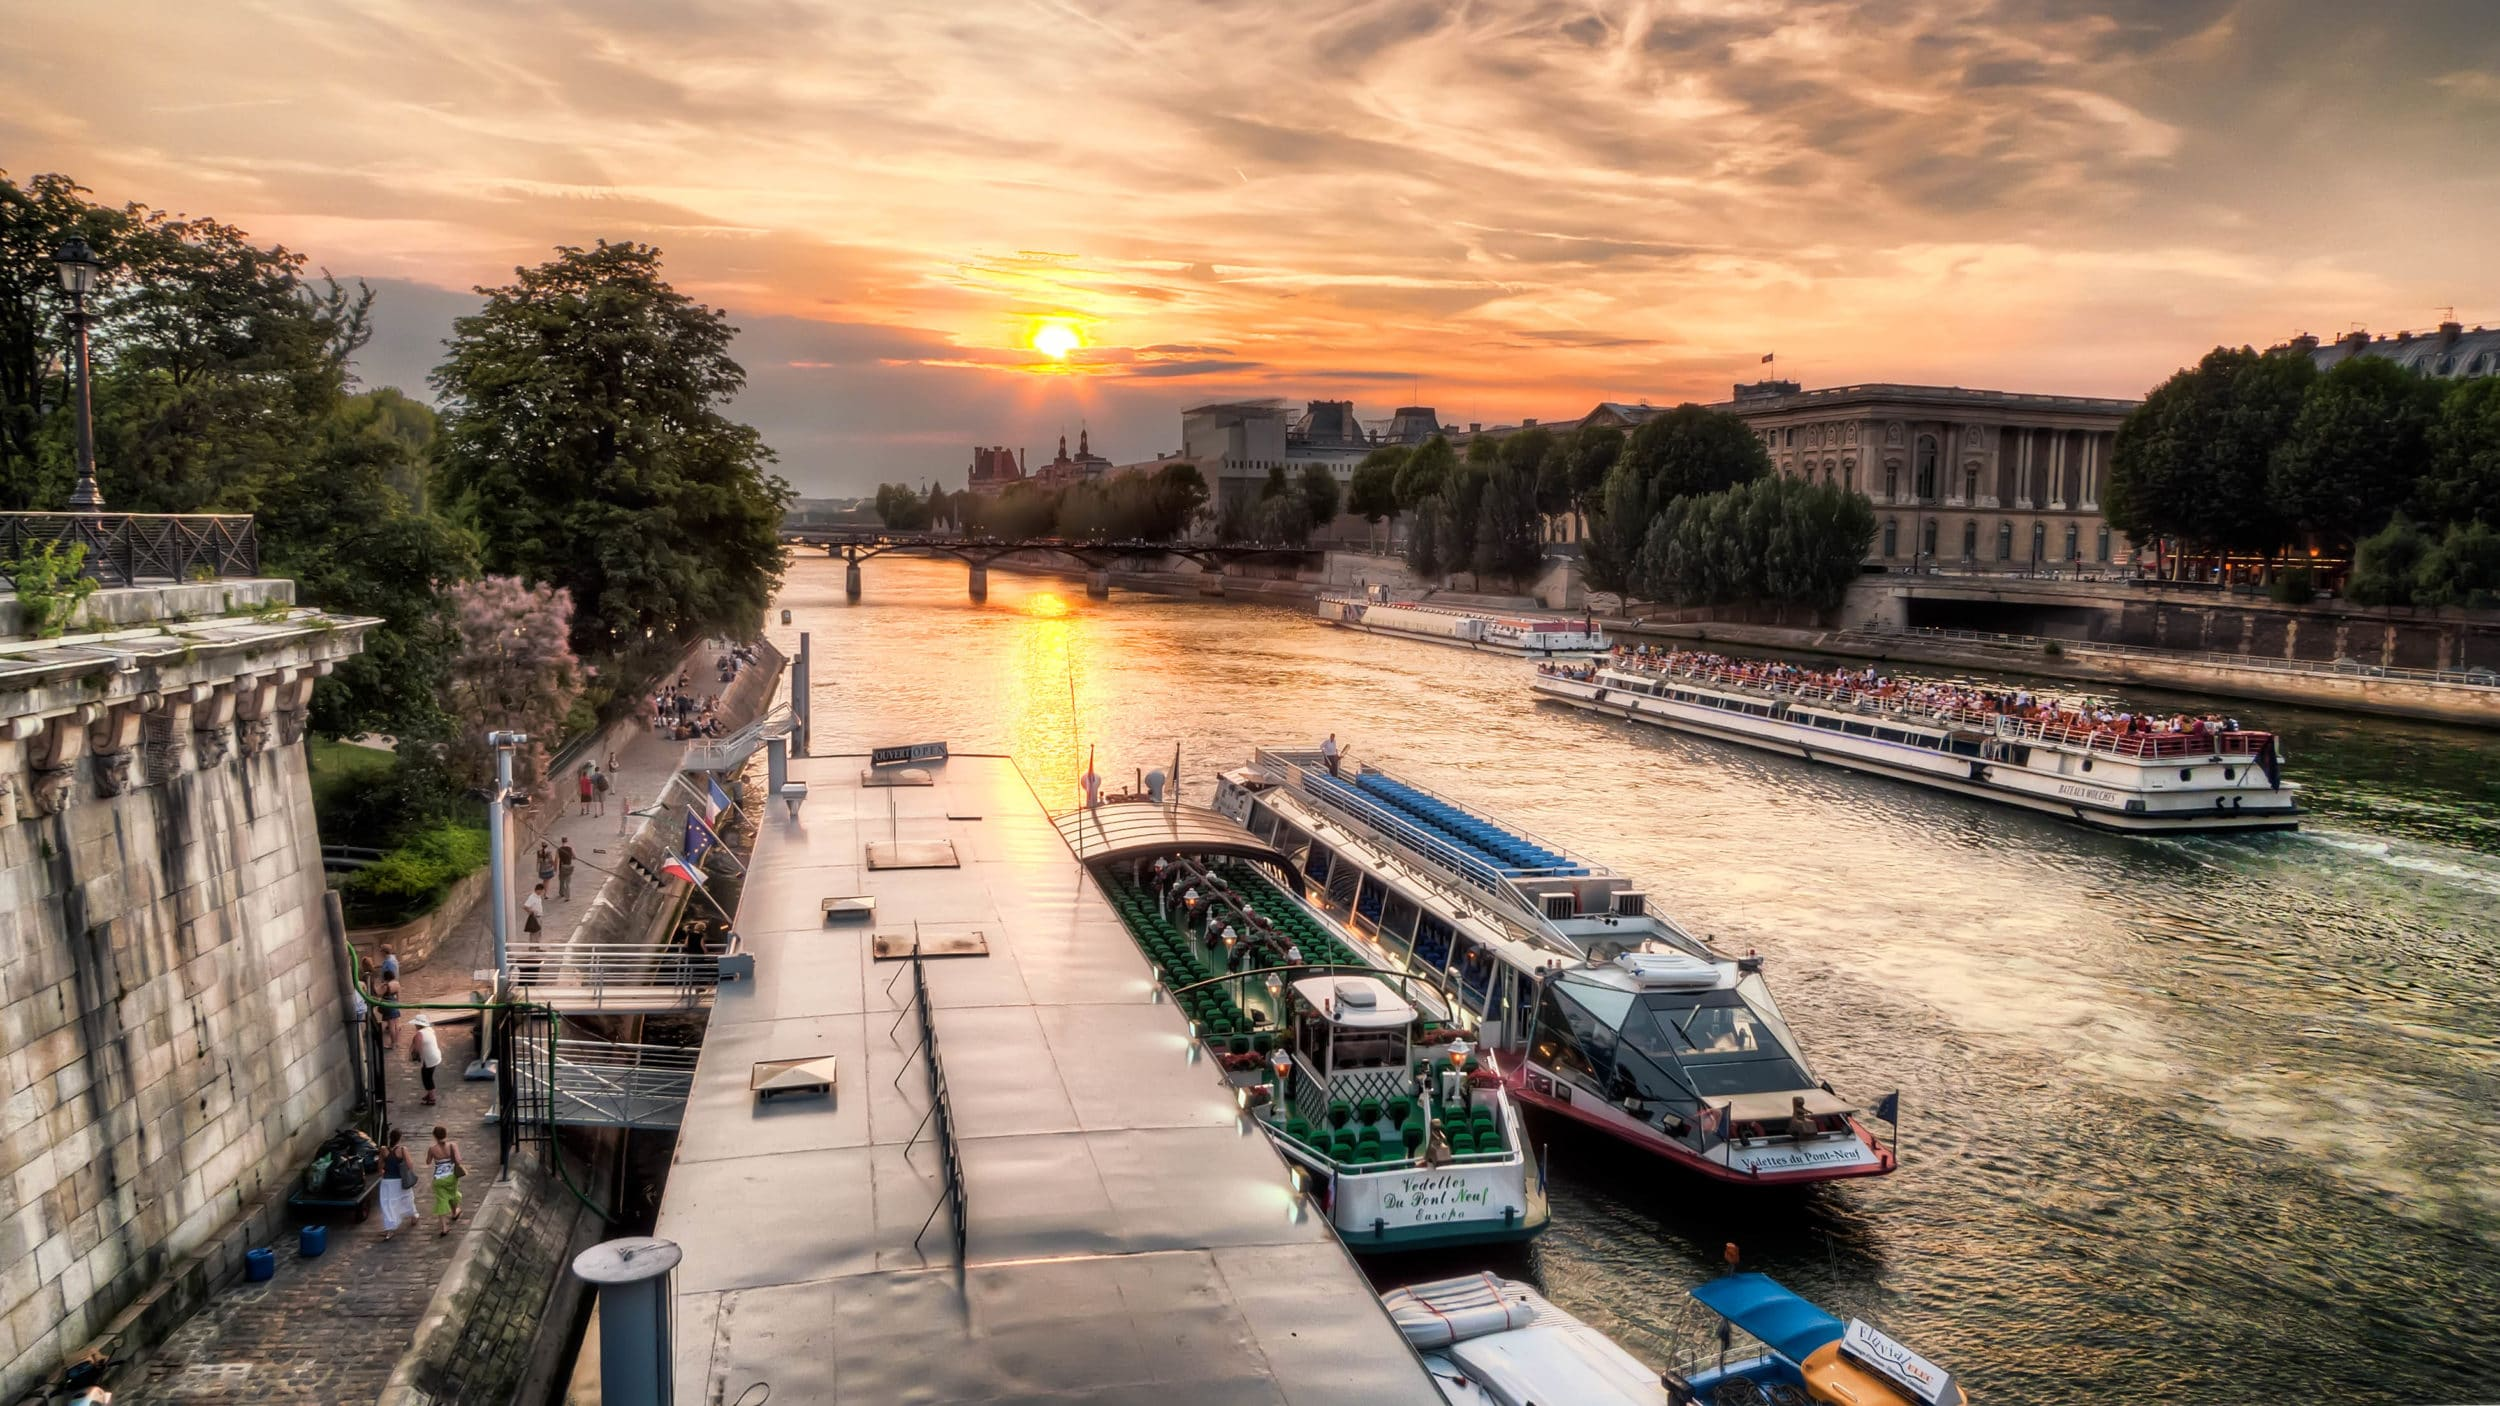 Things to do in Paris: Seine cruise with Bateaux Mouches